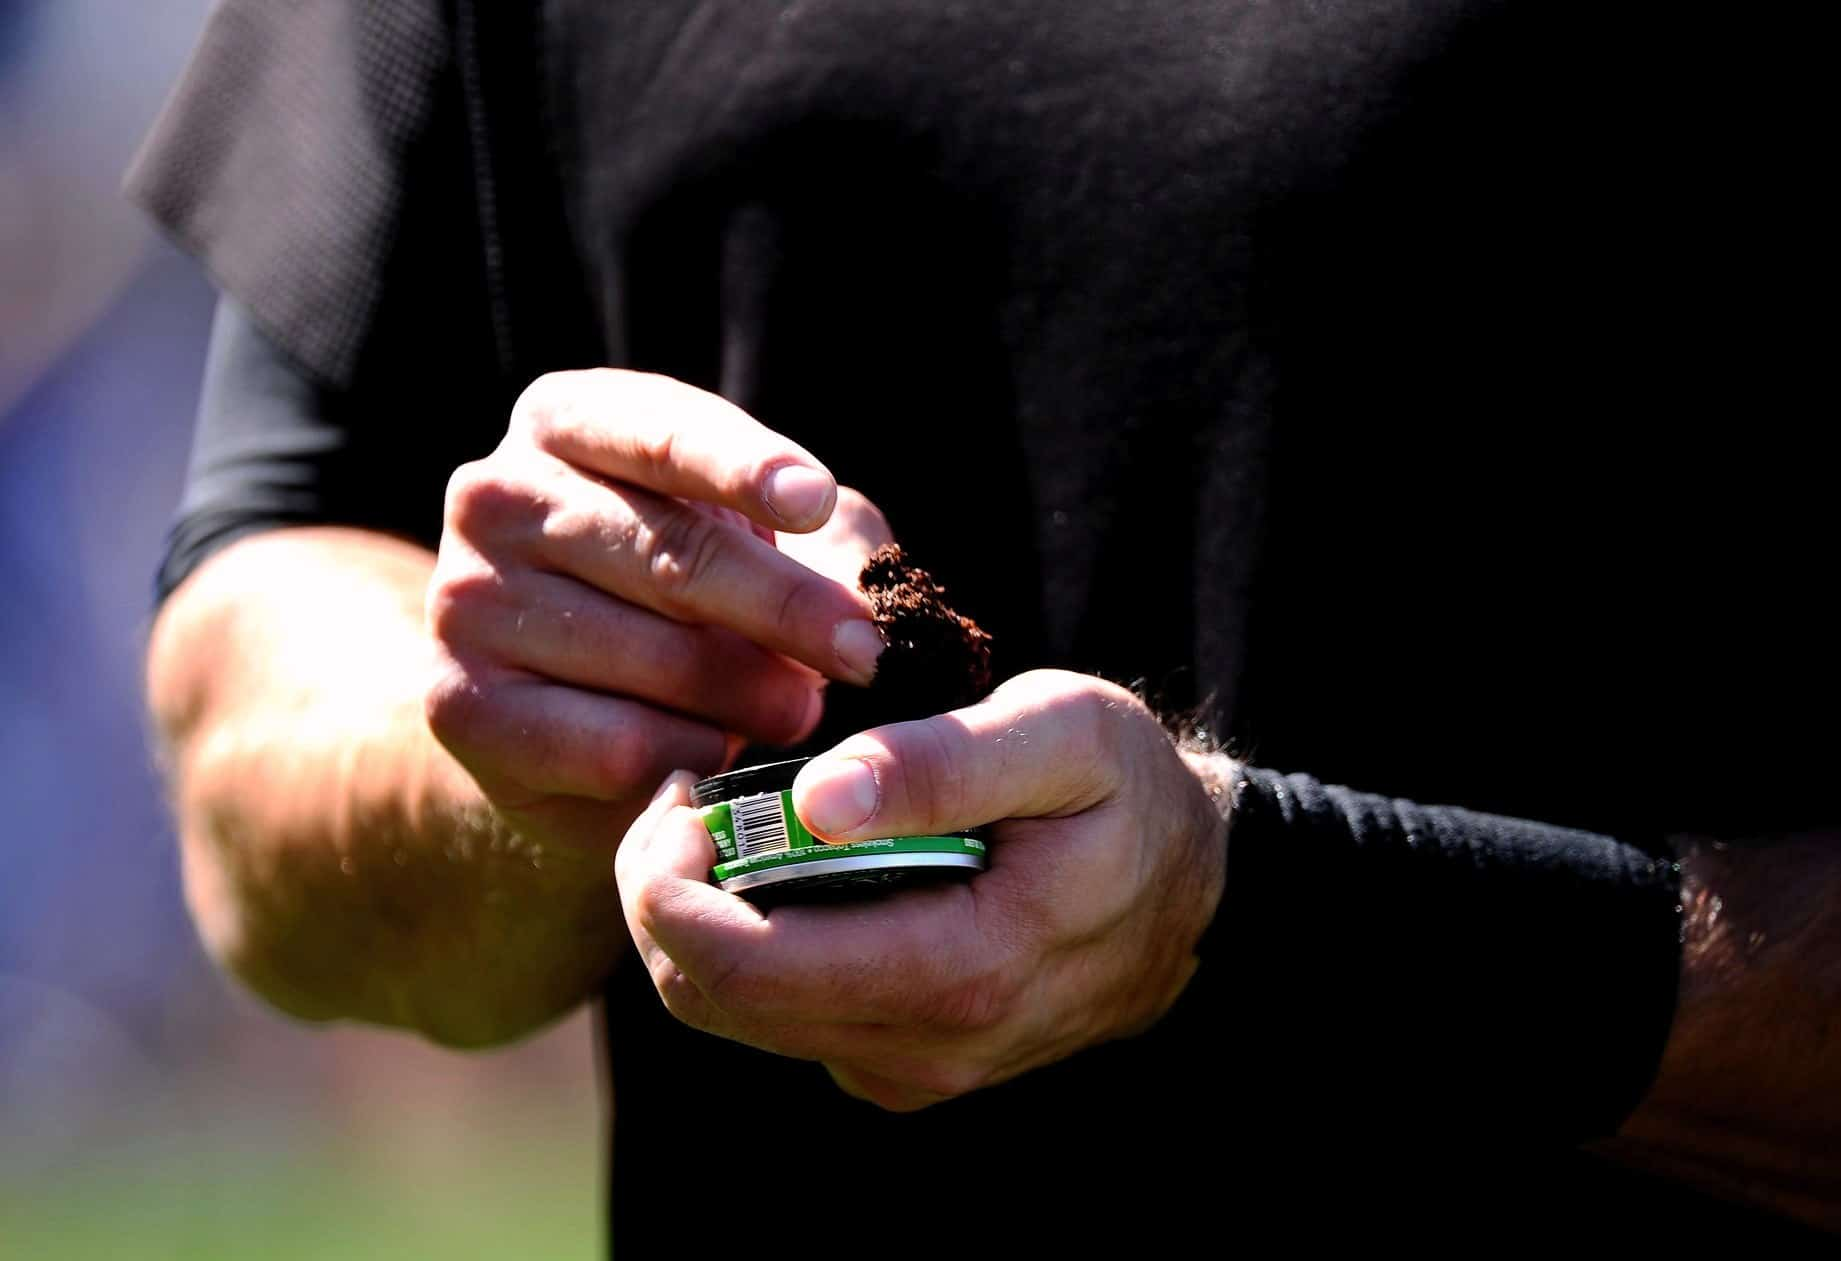 Life Insurance for Smokeless Tobacco Users